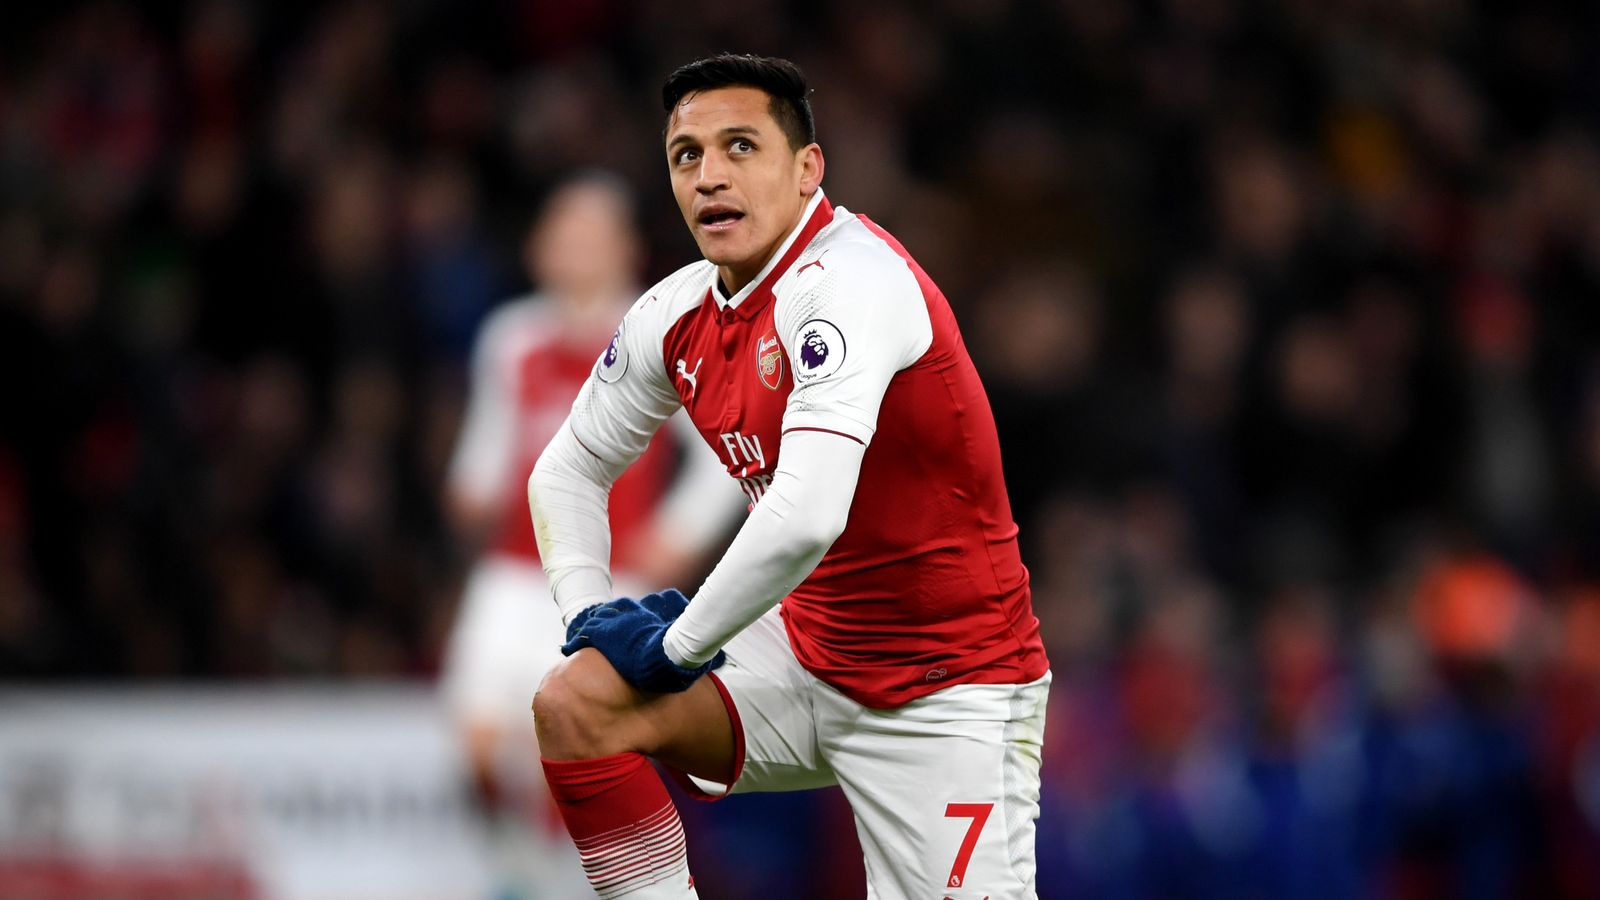 Chelsea interested in signing Alexis Sanchez from Arsenal ...